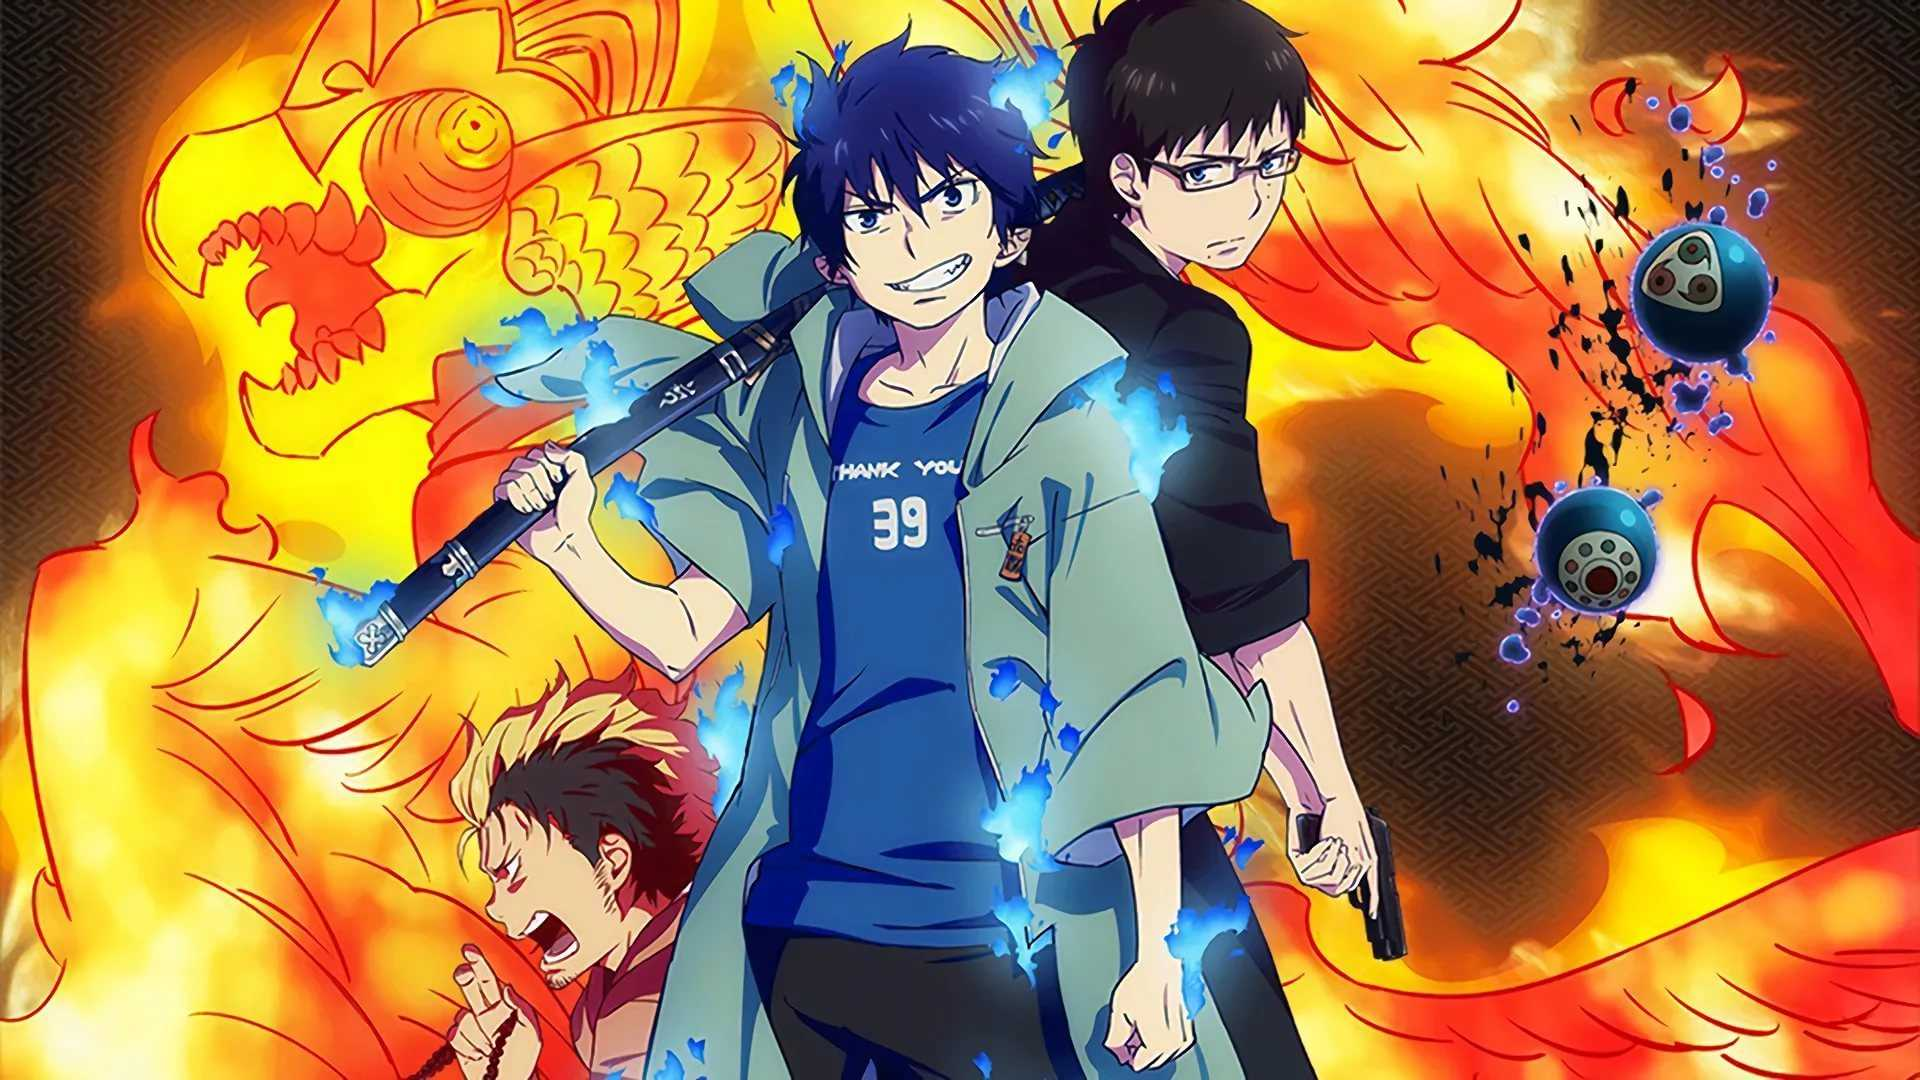 Ghouls, demons, and monsters anime like Jujutsu Kaisen, Blue Exorcist